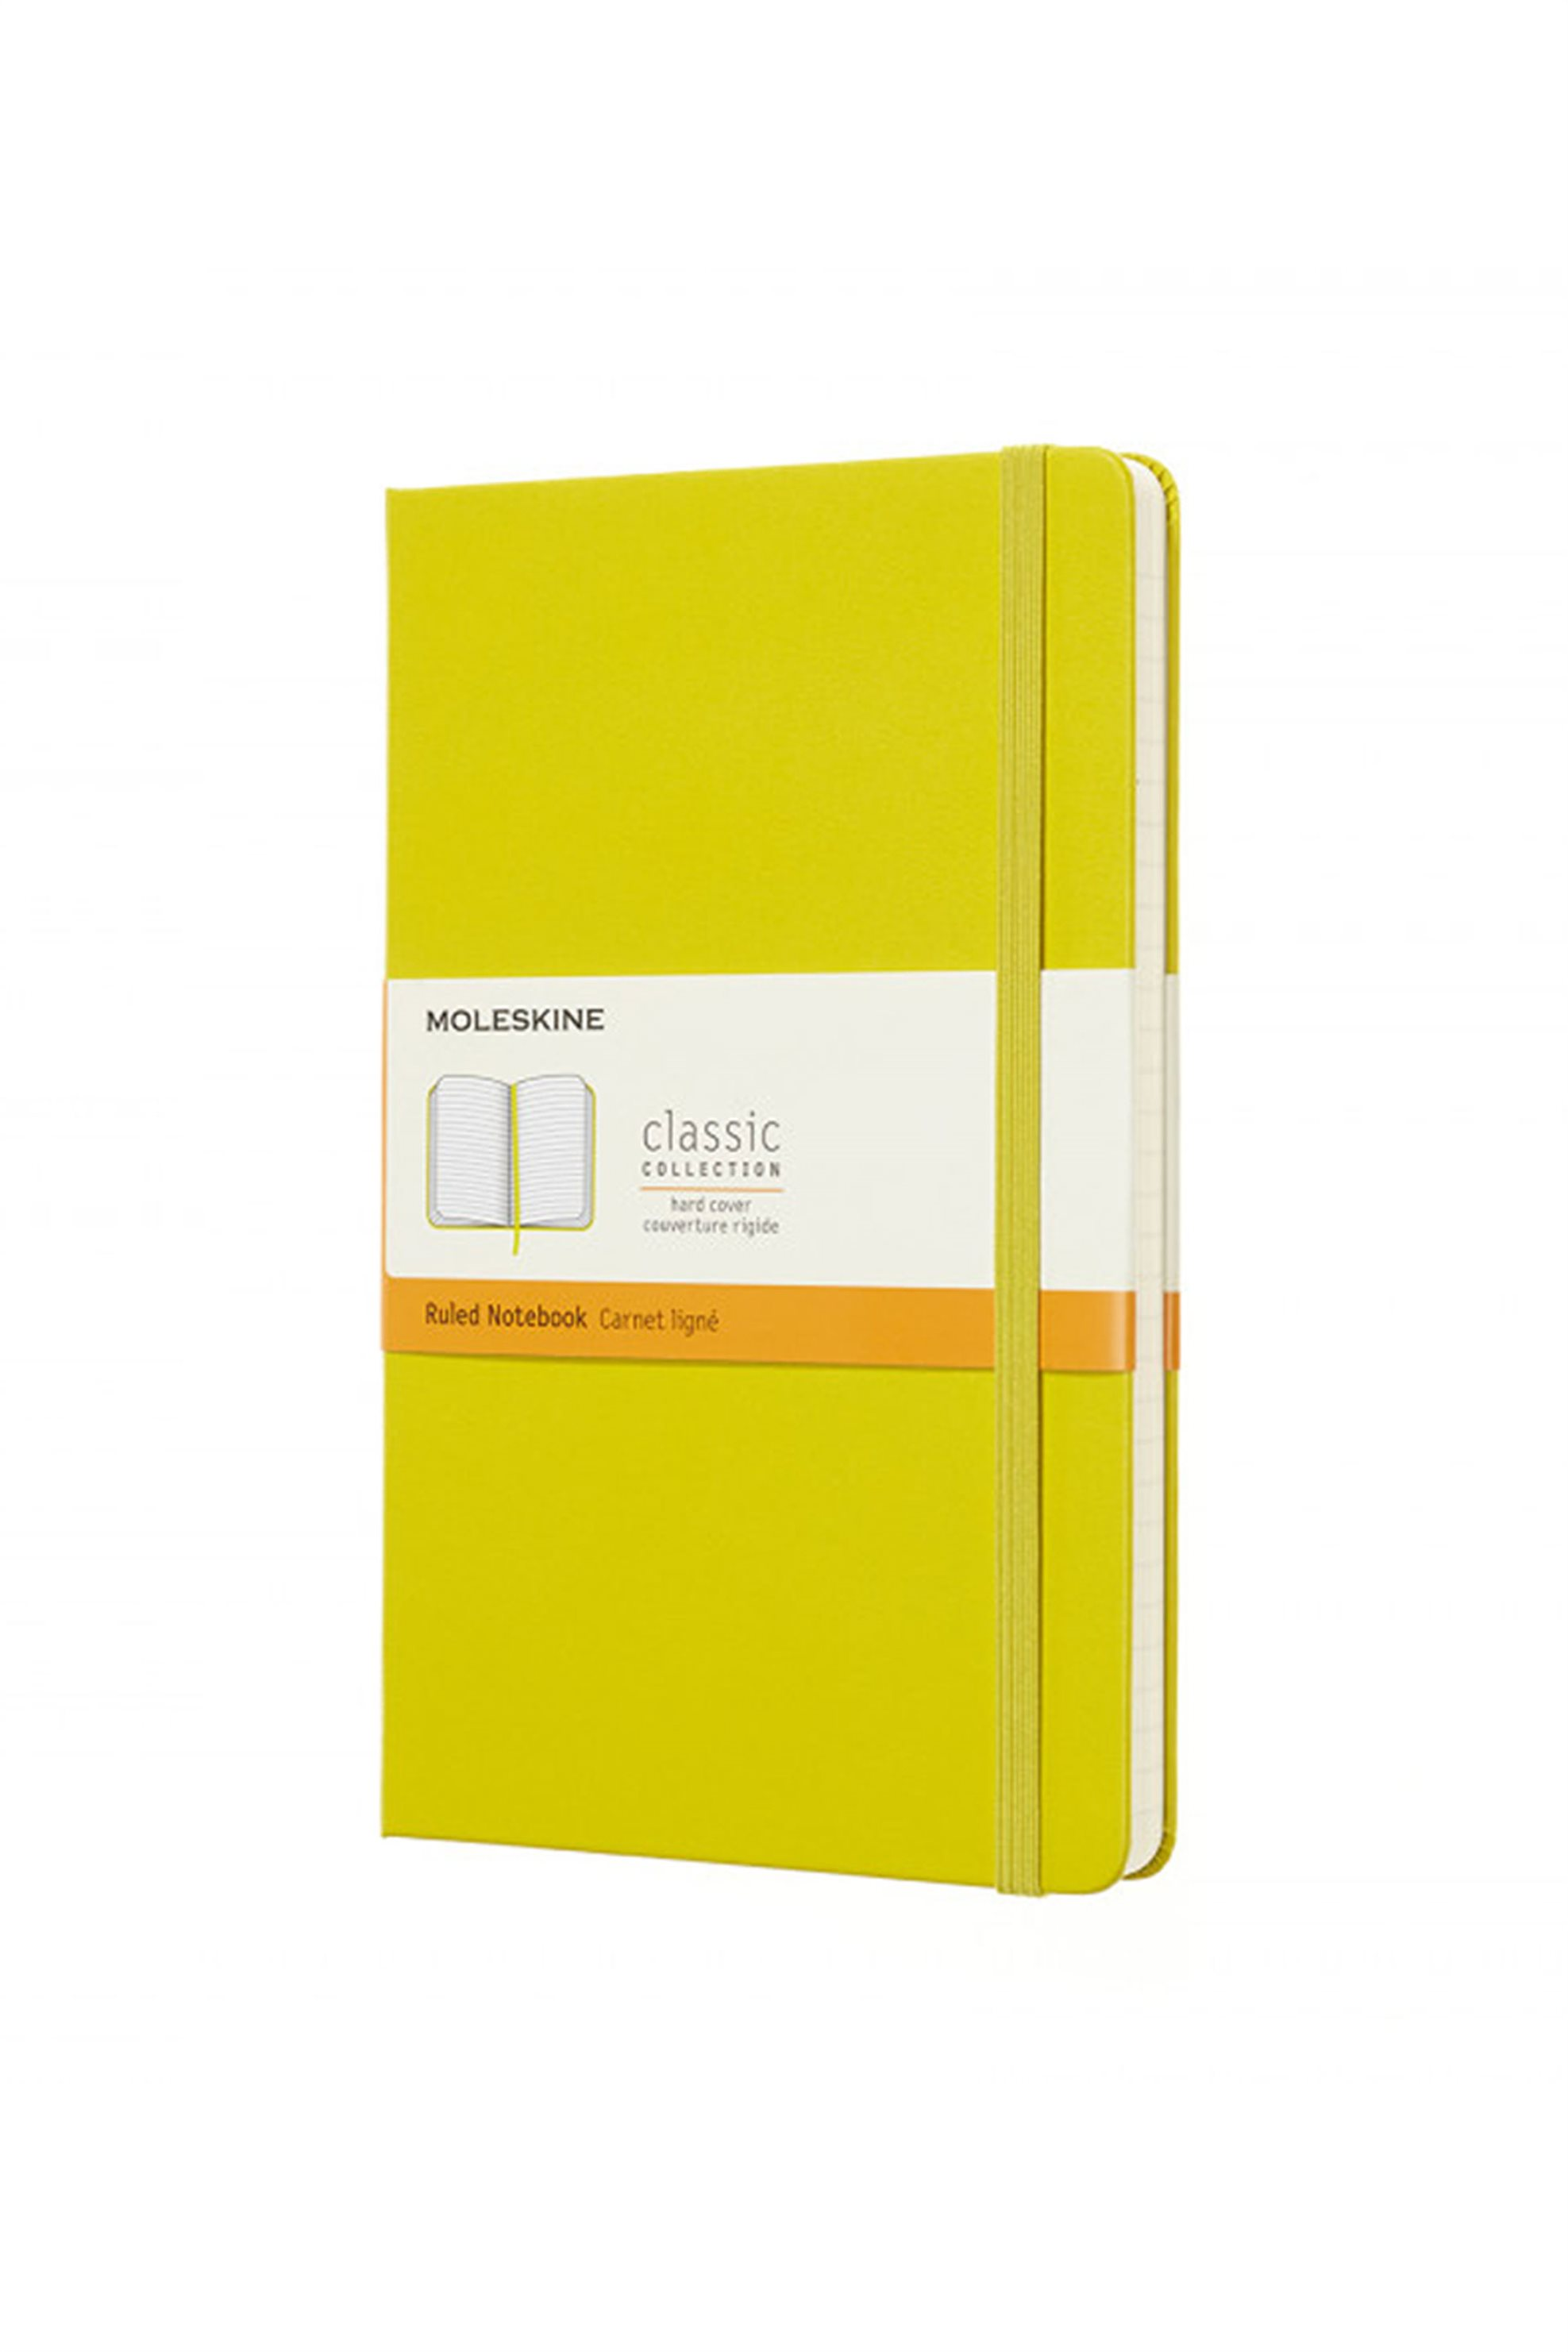 "Moleskine σημειωματάριο ""Rules Notebook Large Dandelion Yell..."